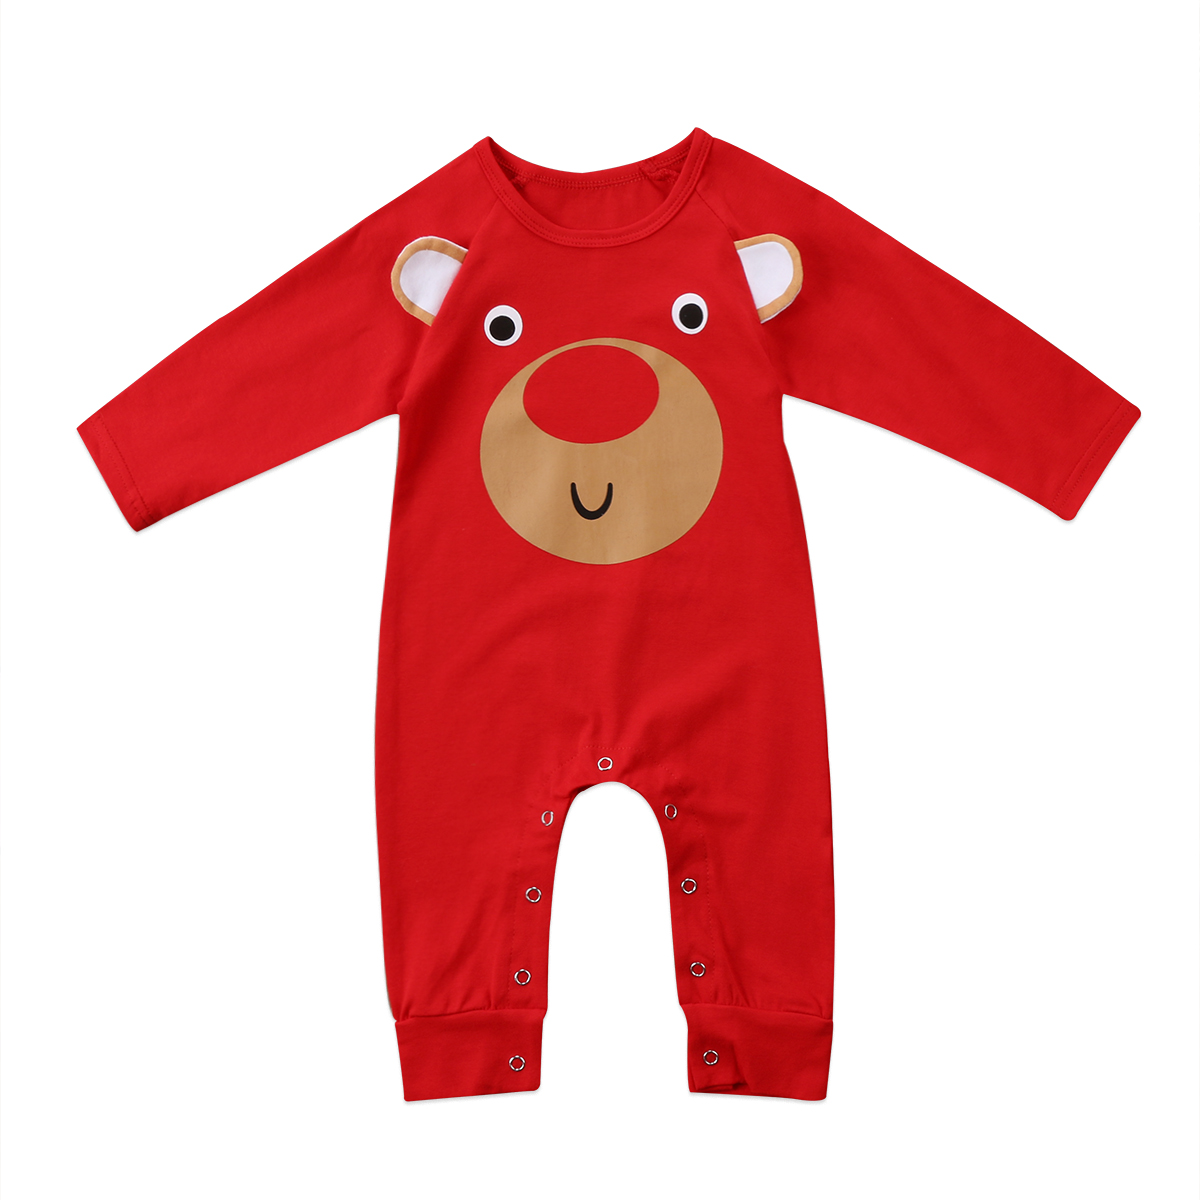 Christmas Newborn Infant Baby Boys Girls 3D Deer Cartoon Romper Jumpsuit Cute Children Long Sleeve Cotton Clothes Outfit cotton cute red lips print newborn infant baby boys clothing spring long sleeve romper jumpsuit baby rompers clothes outfits set